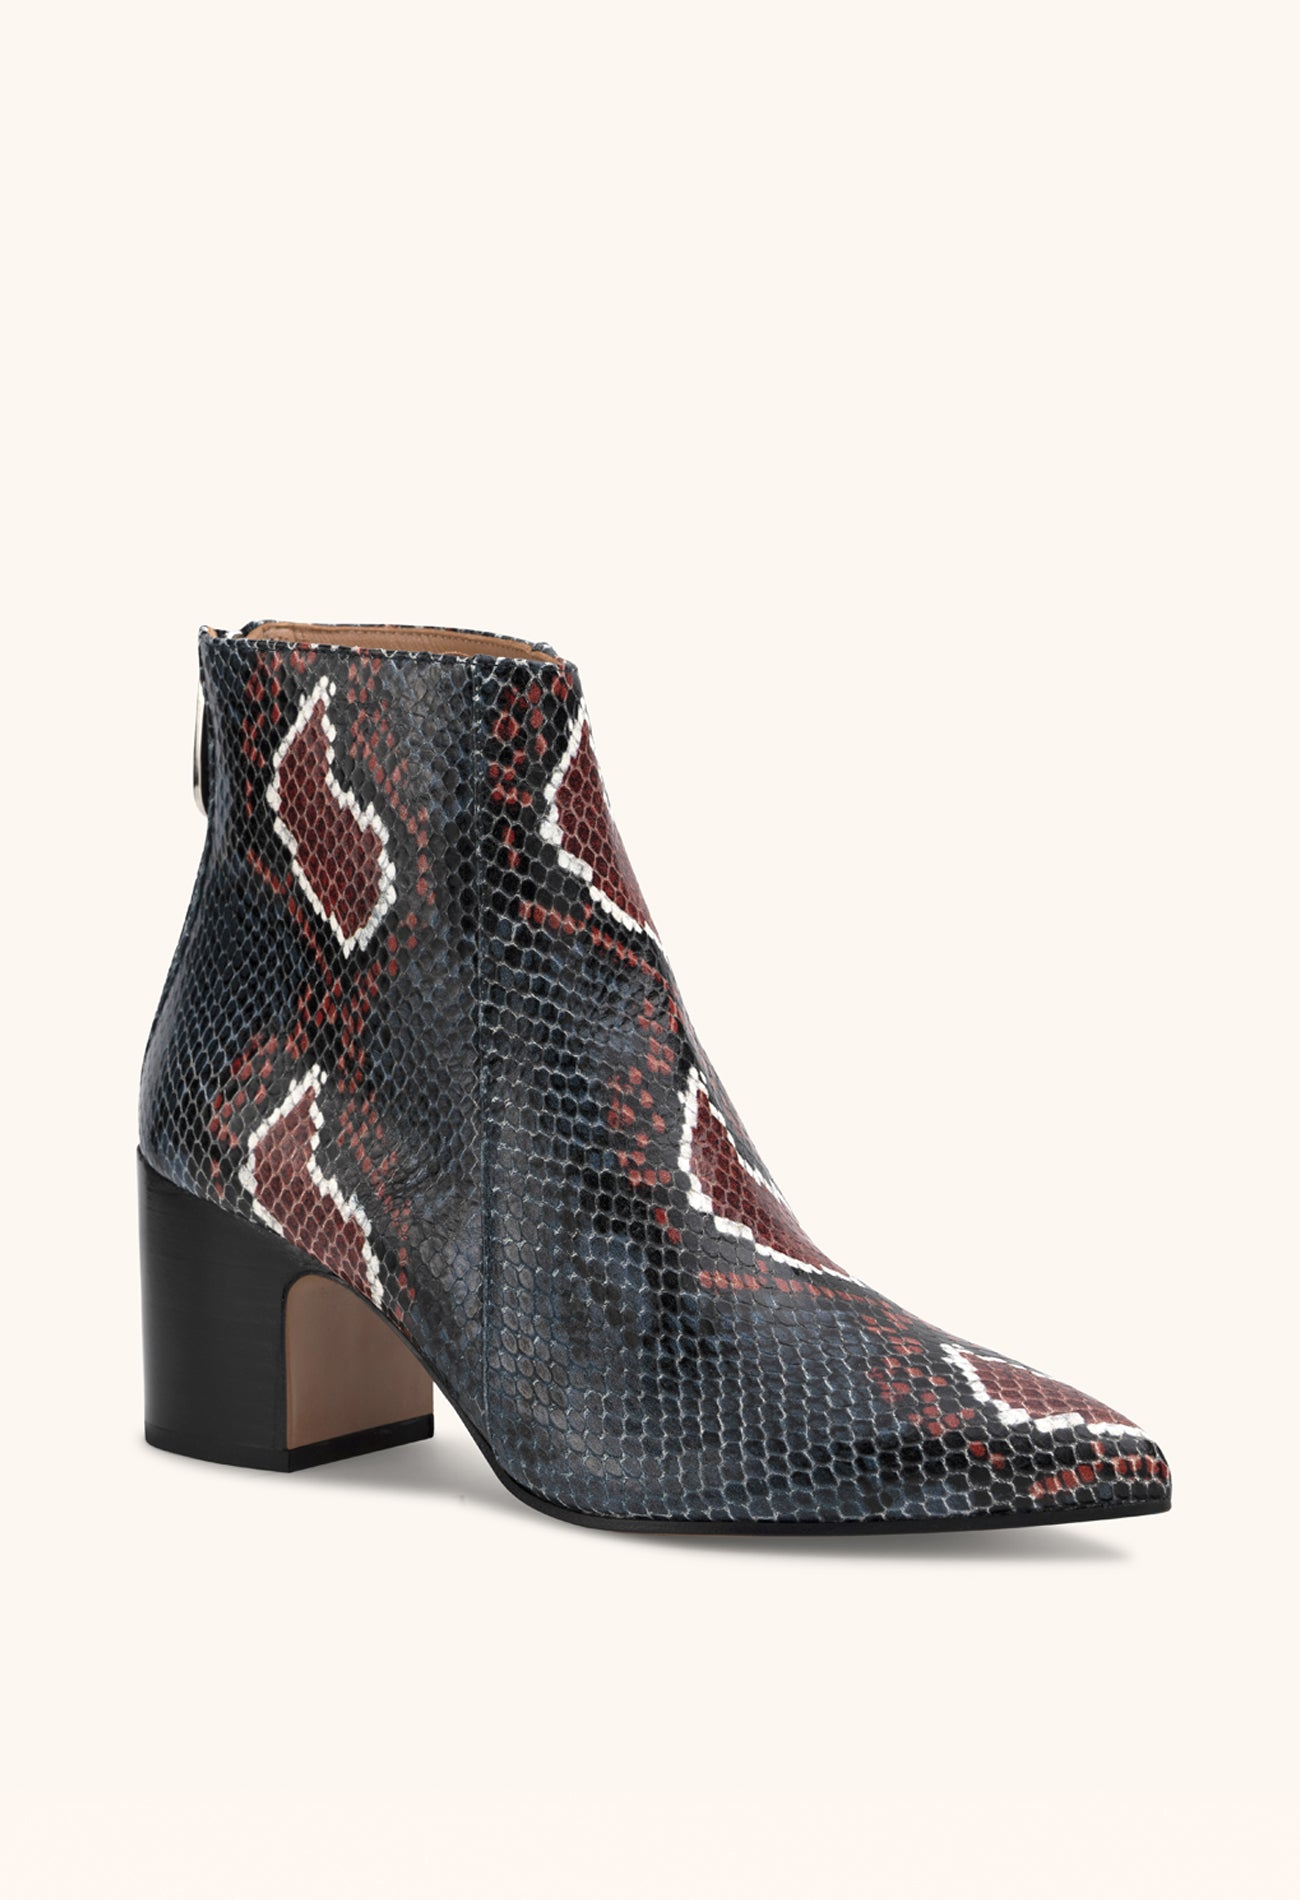 Armada ankle boots in navy/brick python print leather